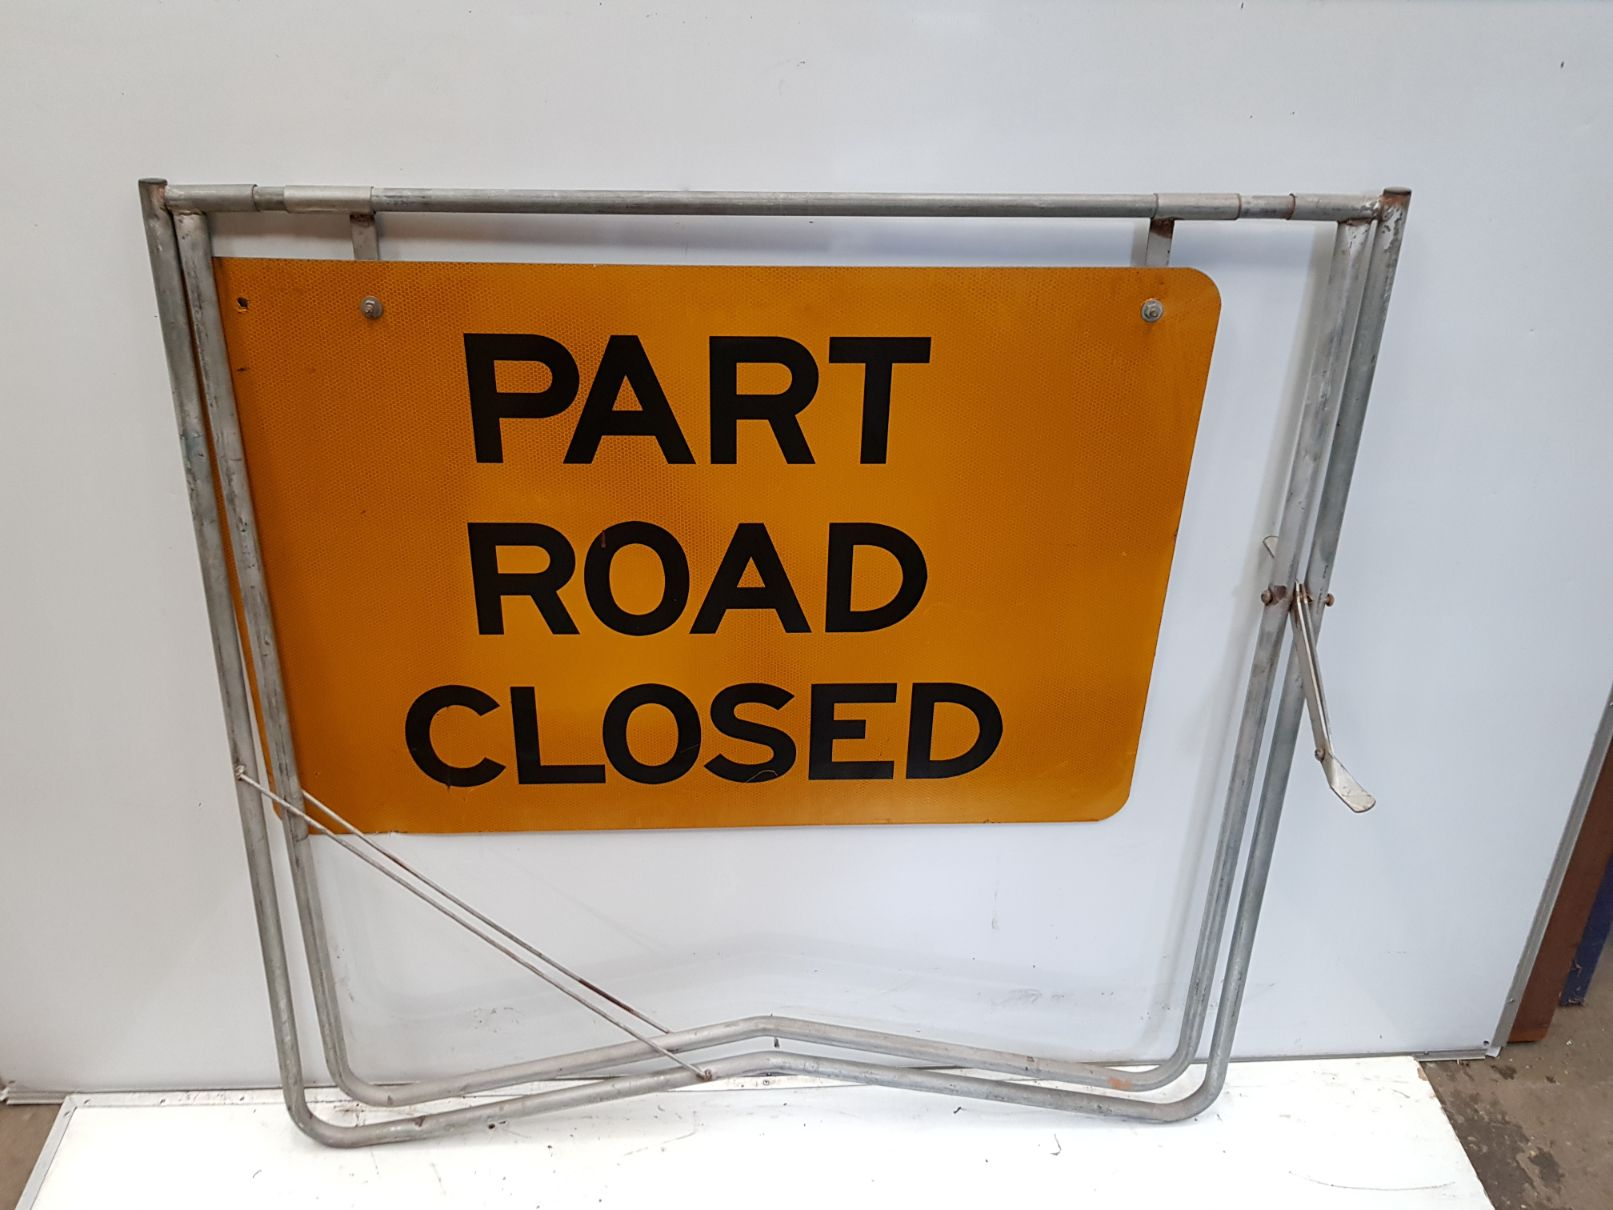 Part Road Closed Swign Sign.jpg